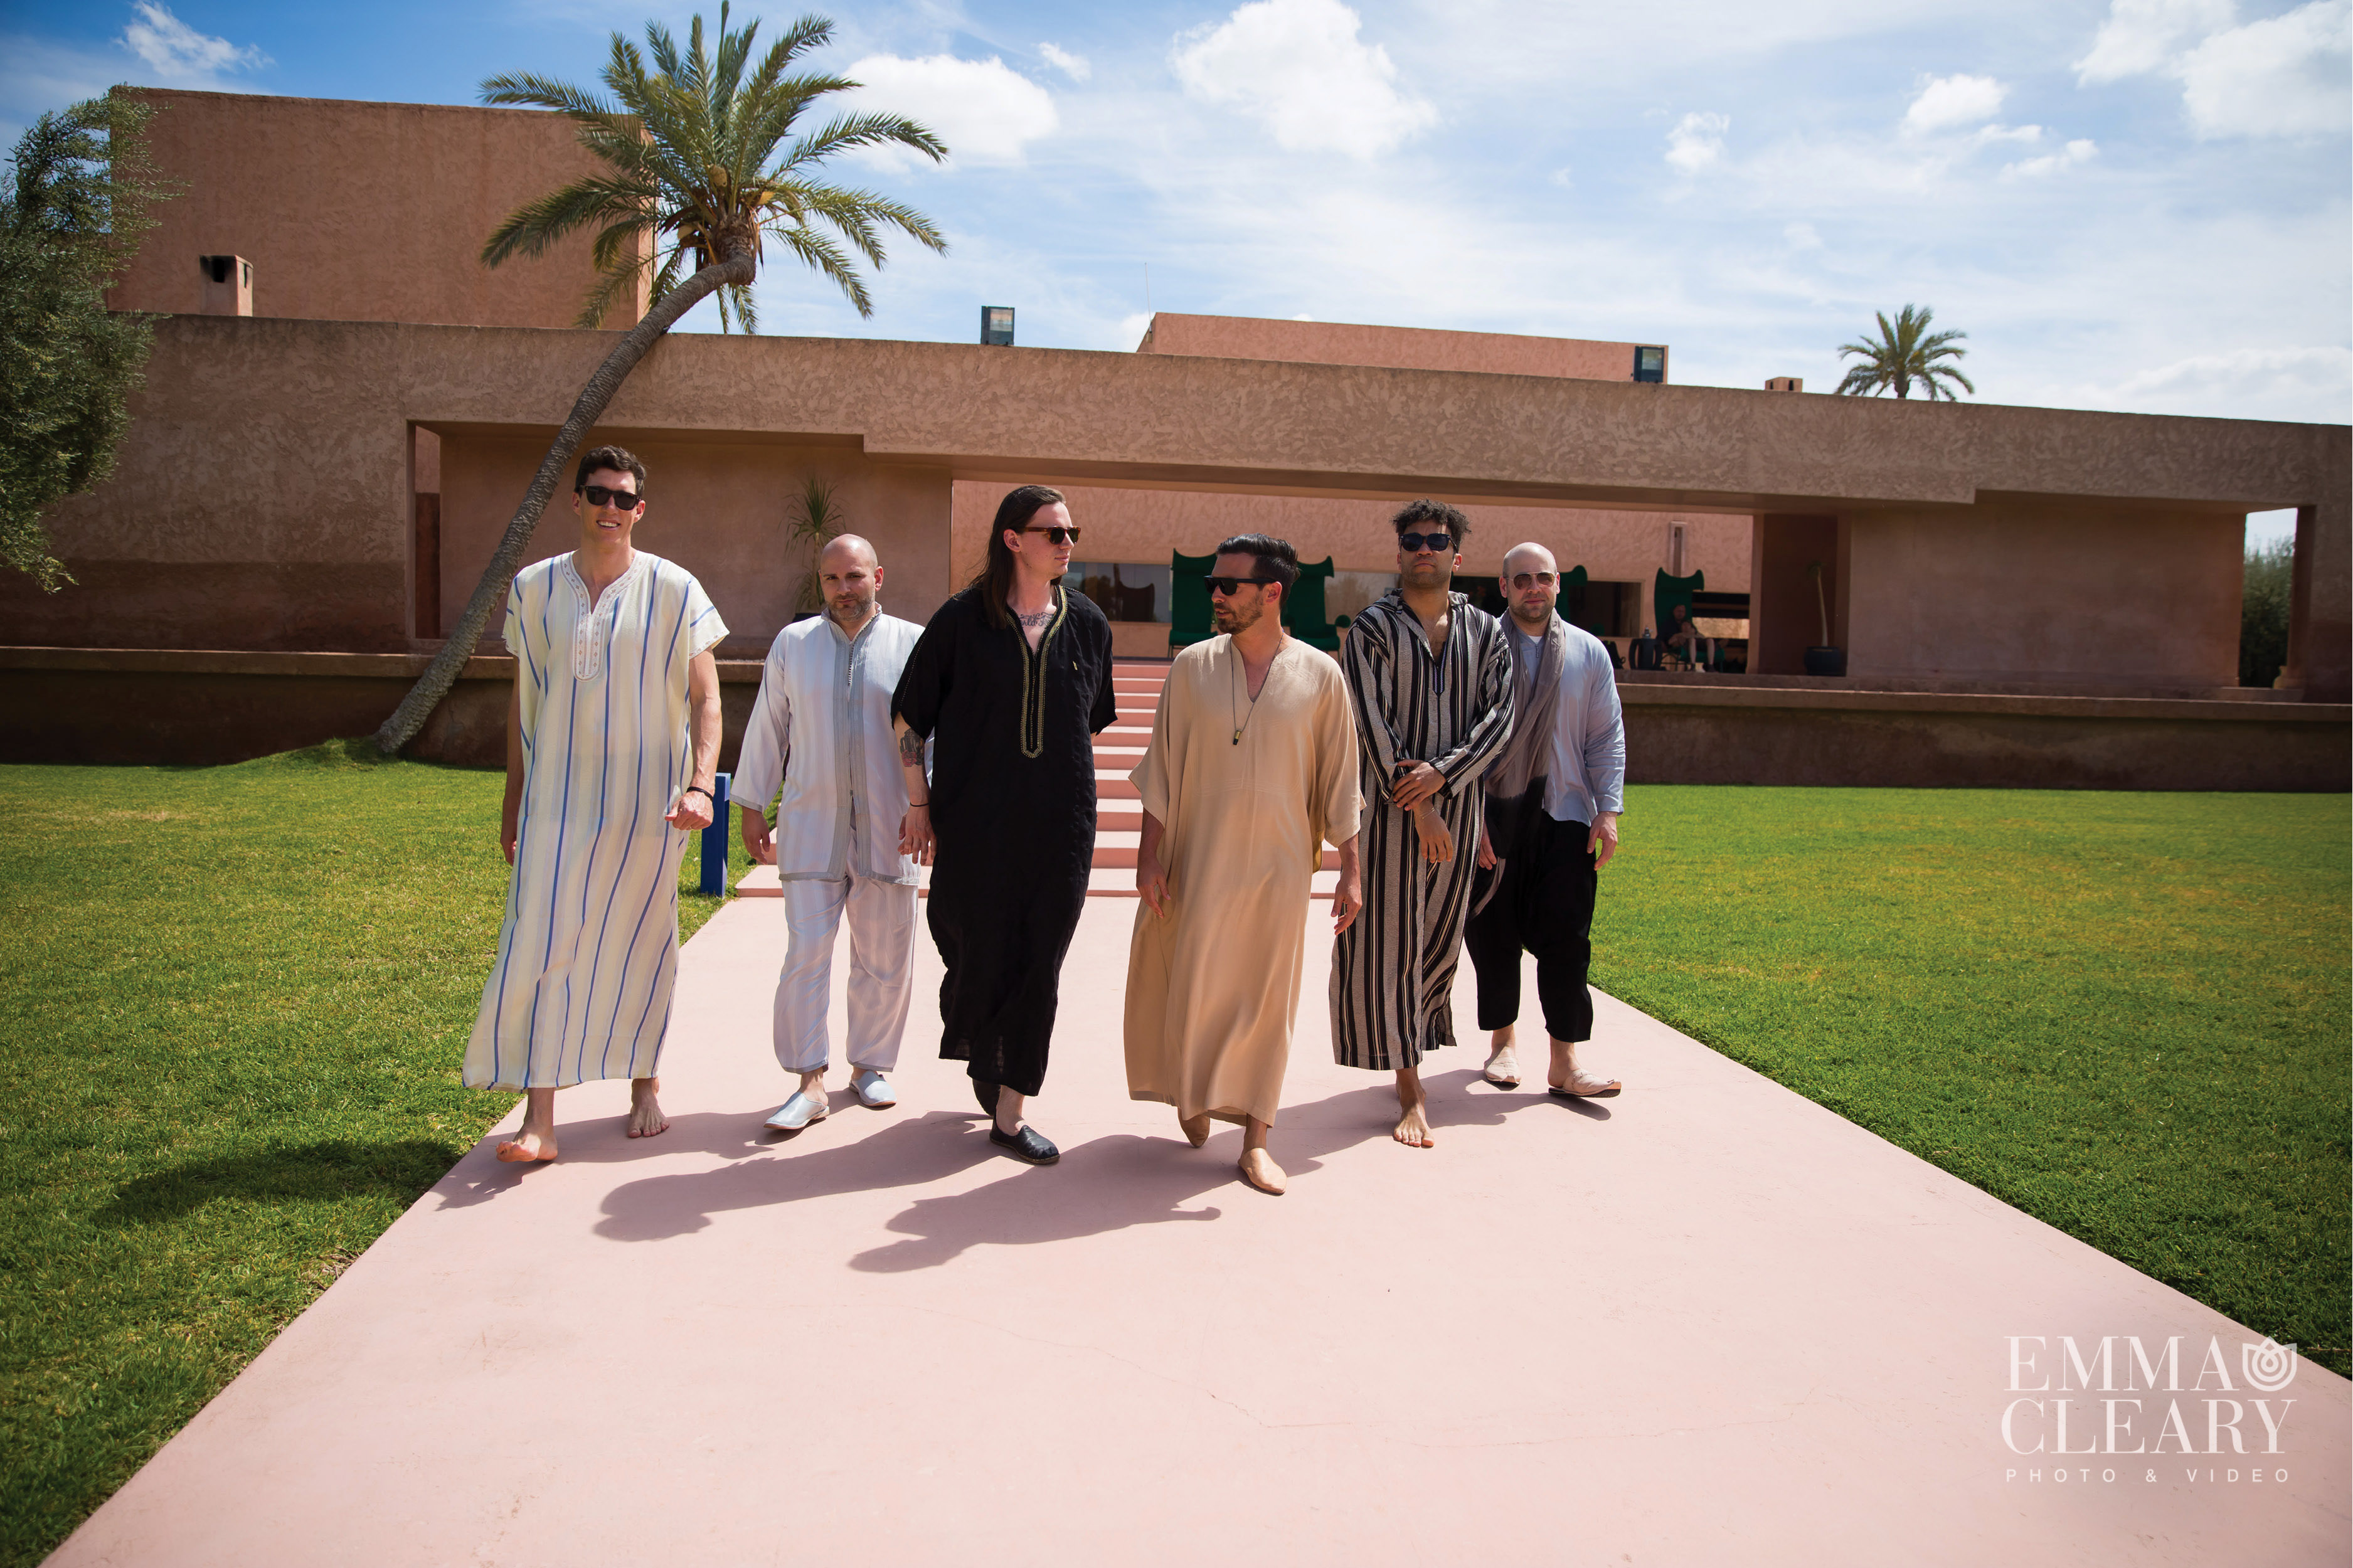 Emma_cleary_photography Destination Wedding Morrocco22